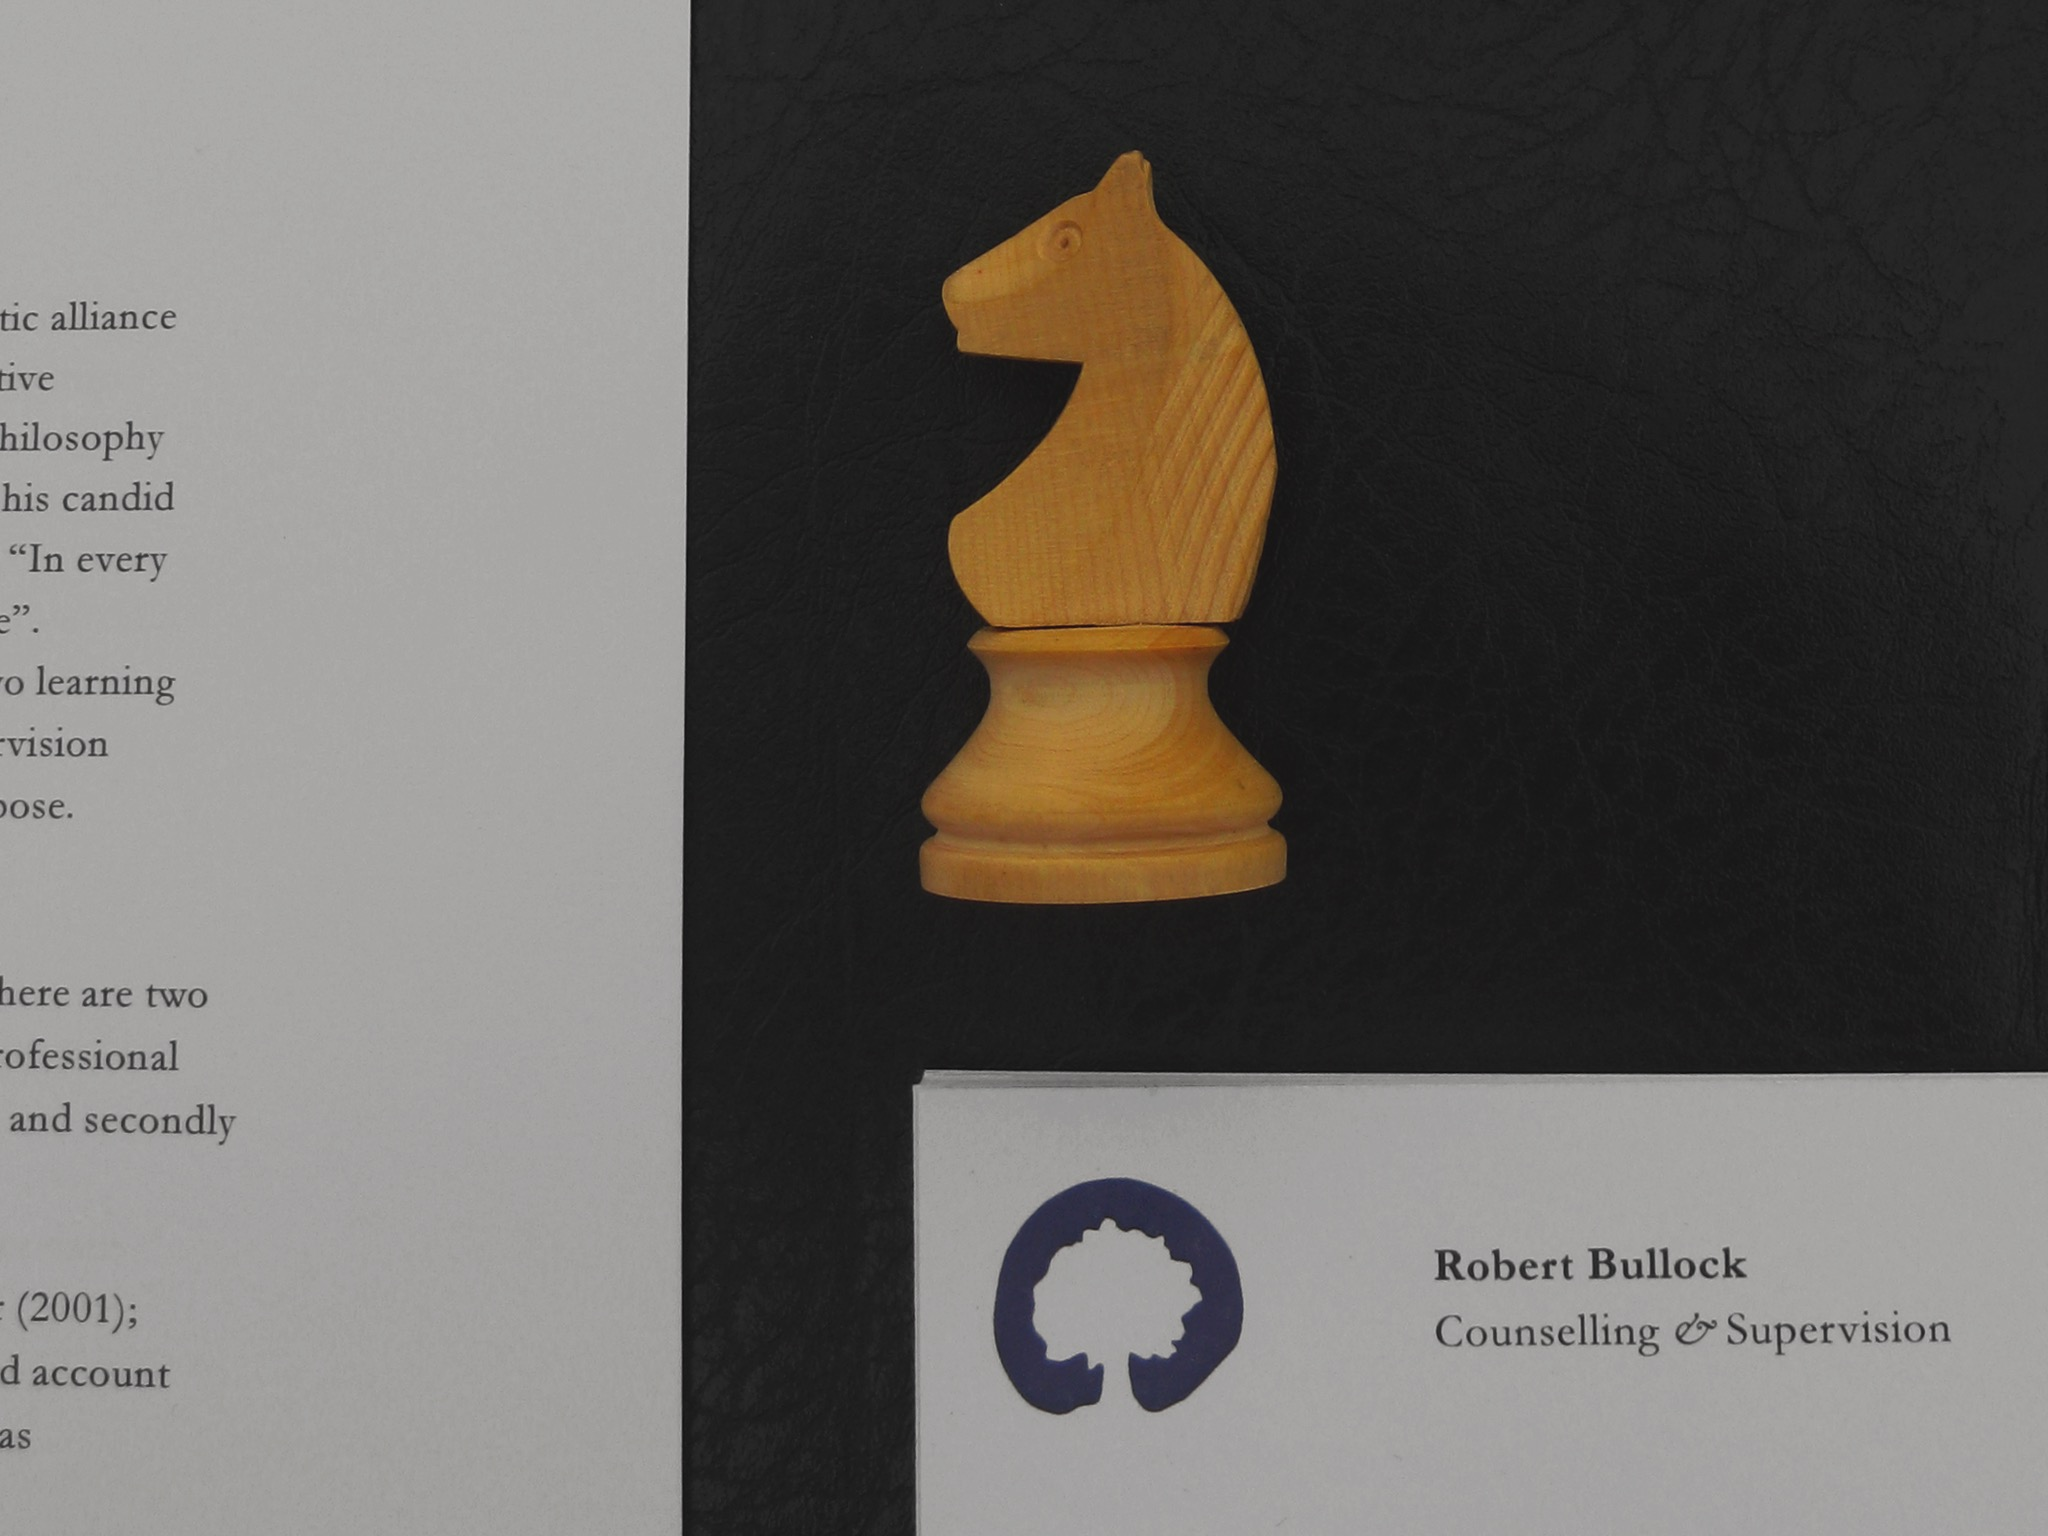 Robert Bullock Counselling & Supervision